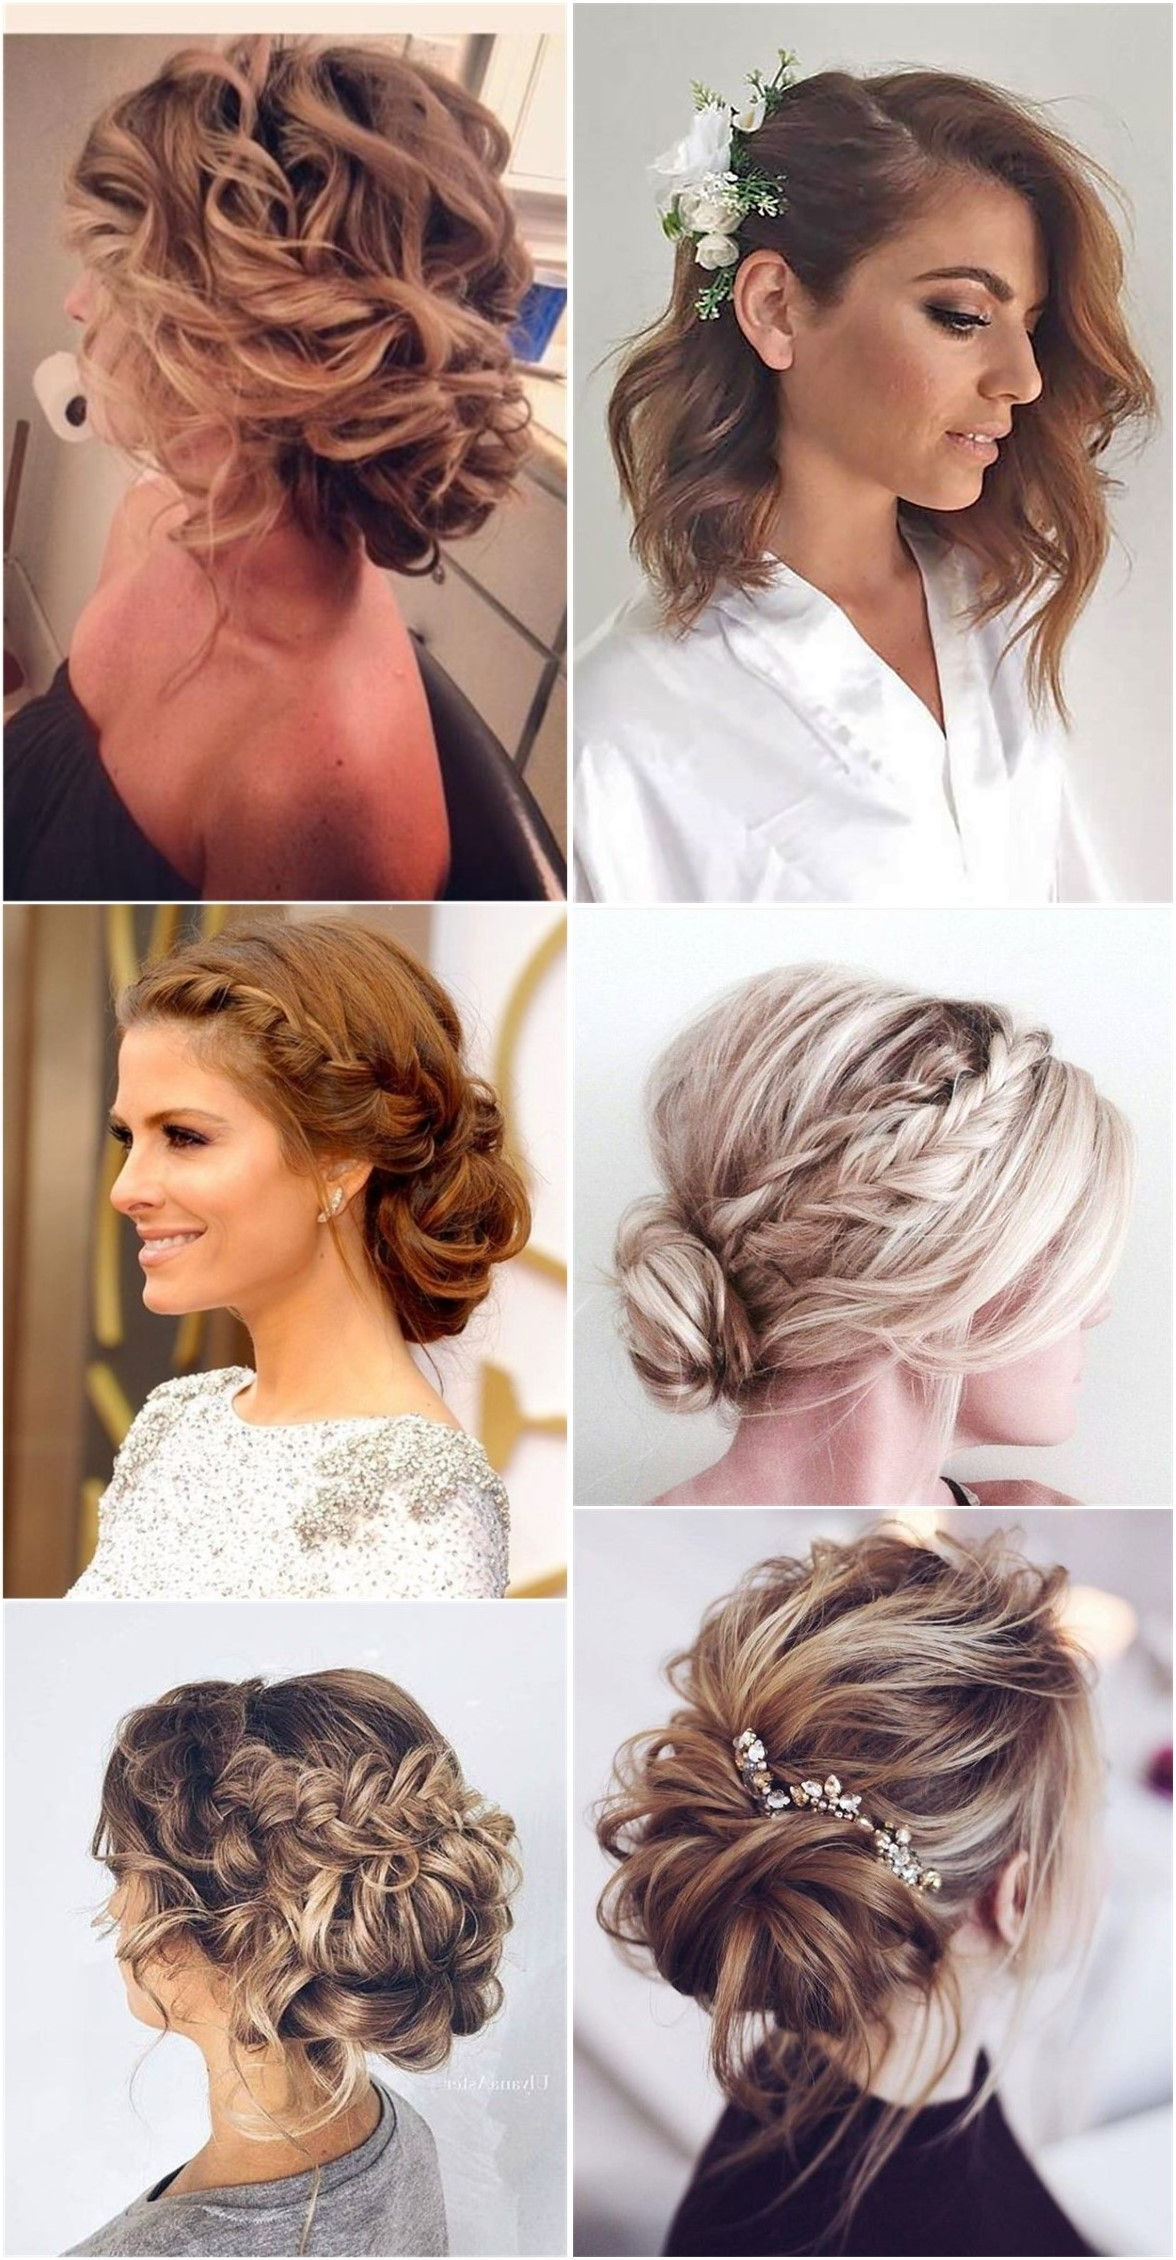 2019 Braided Shoulder Length Hairstyles In 24 Lovely Medium Length Hairstyles For 2019 Weddings (View 7 of 20)